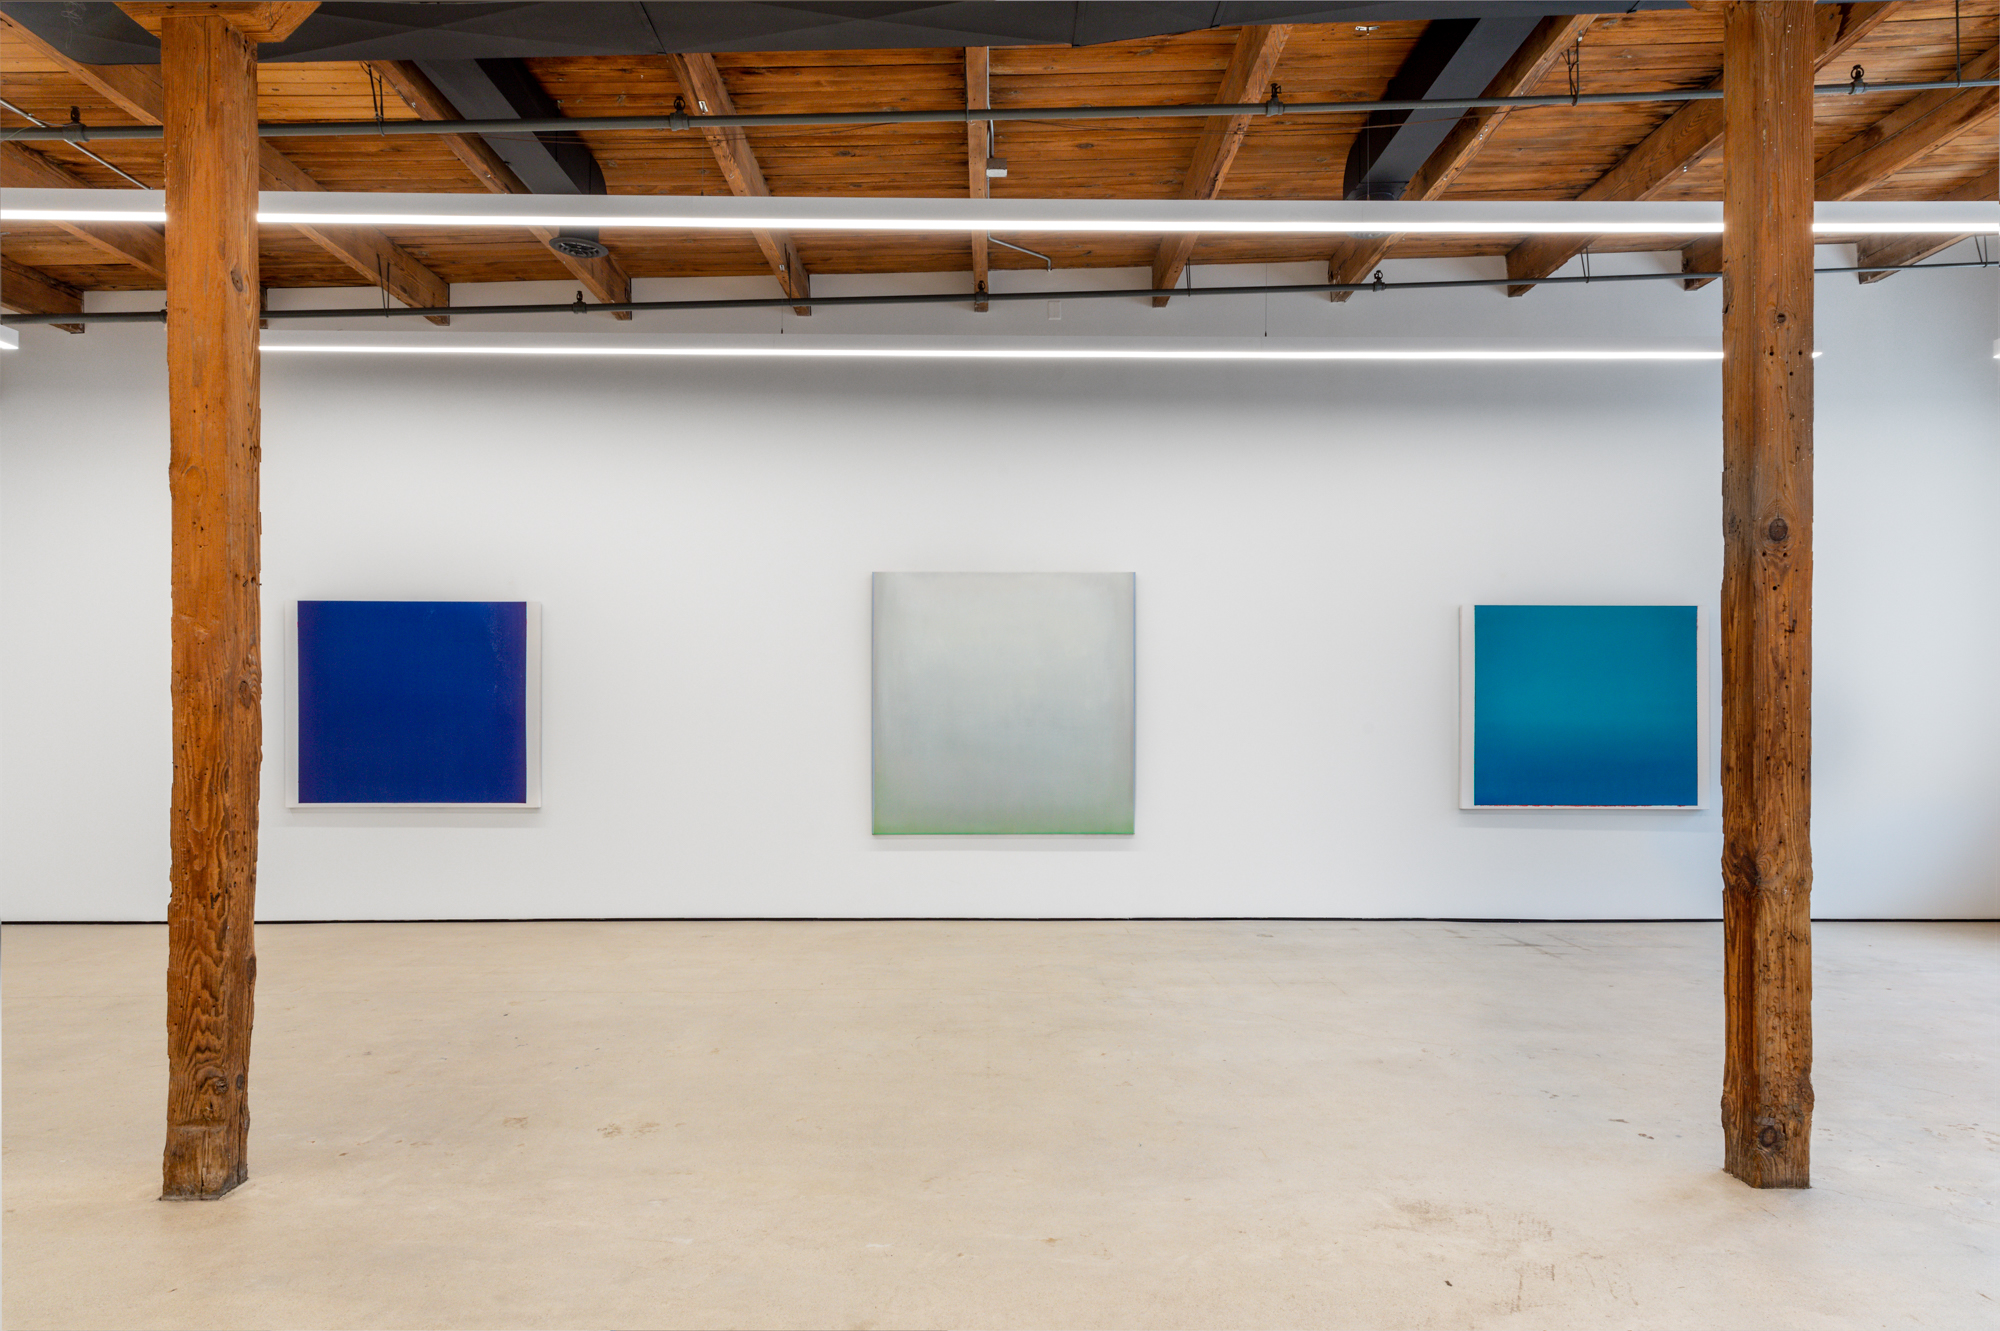 Featured image: An installation view of Sergio Lucena: The Blue that embraces me... at Mariane Ibrahim Gallery. Three paintings hang on a white wall. Photo by Evan Jenkins, Courtesy Mariane Ibrahim.